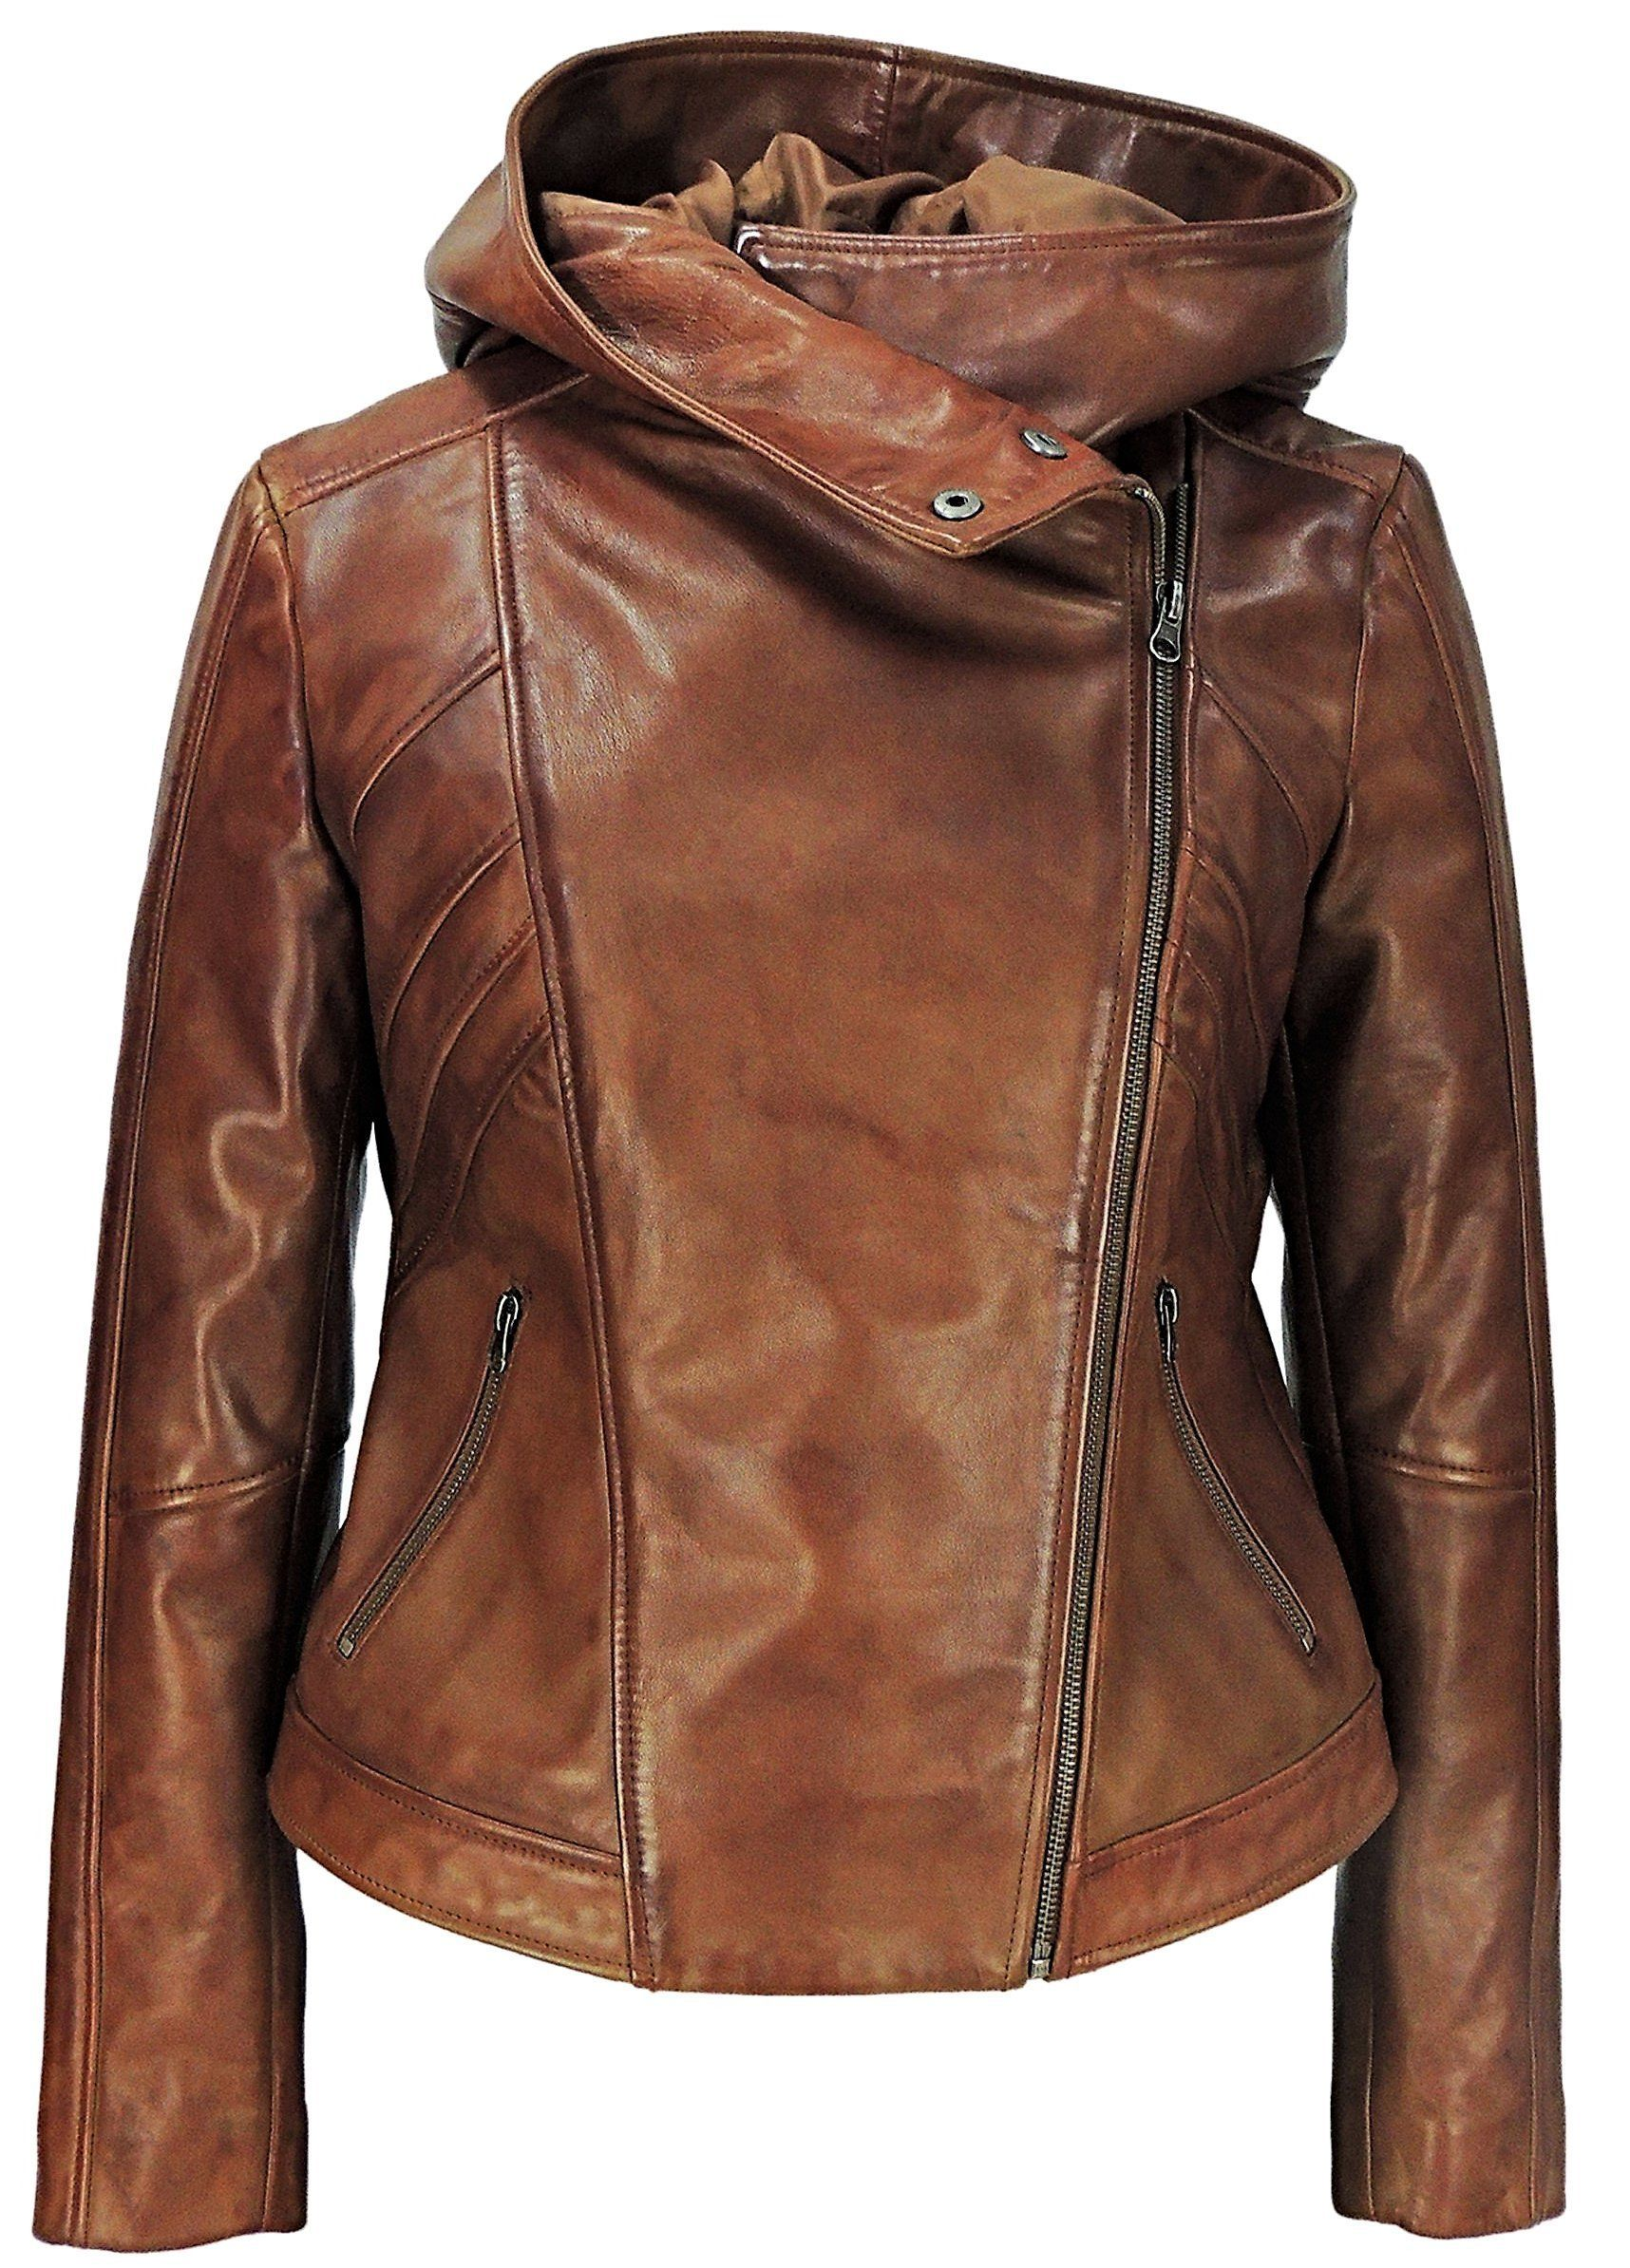 Sasha High Fashion Womens Hooded Leather Jacket - Discounted in 2019 ... 6c509f83ab